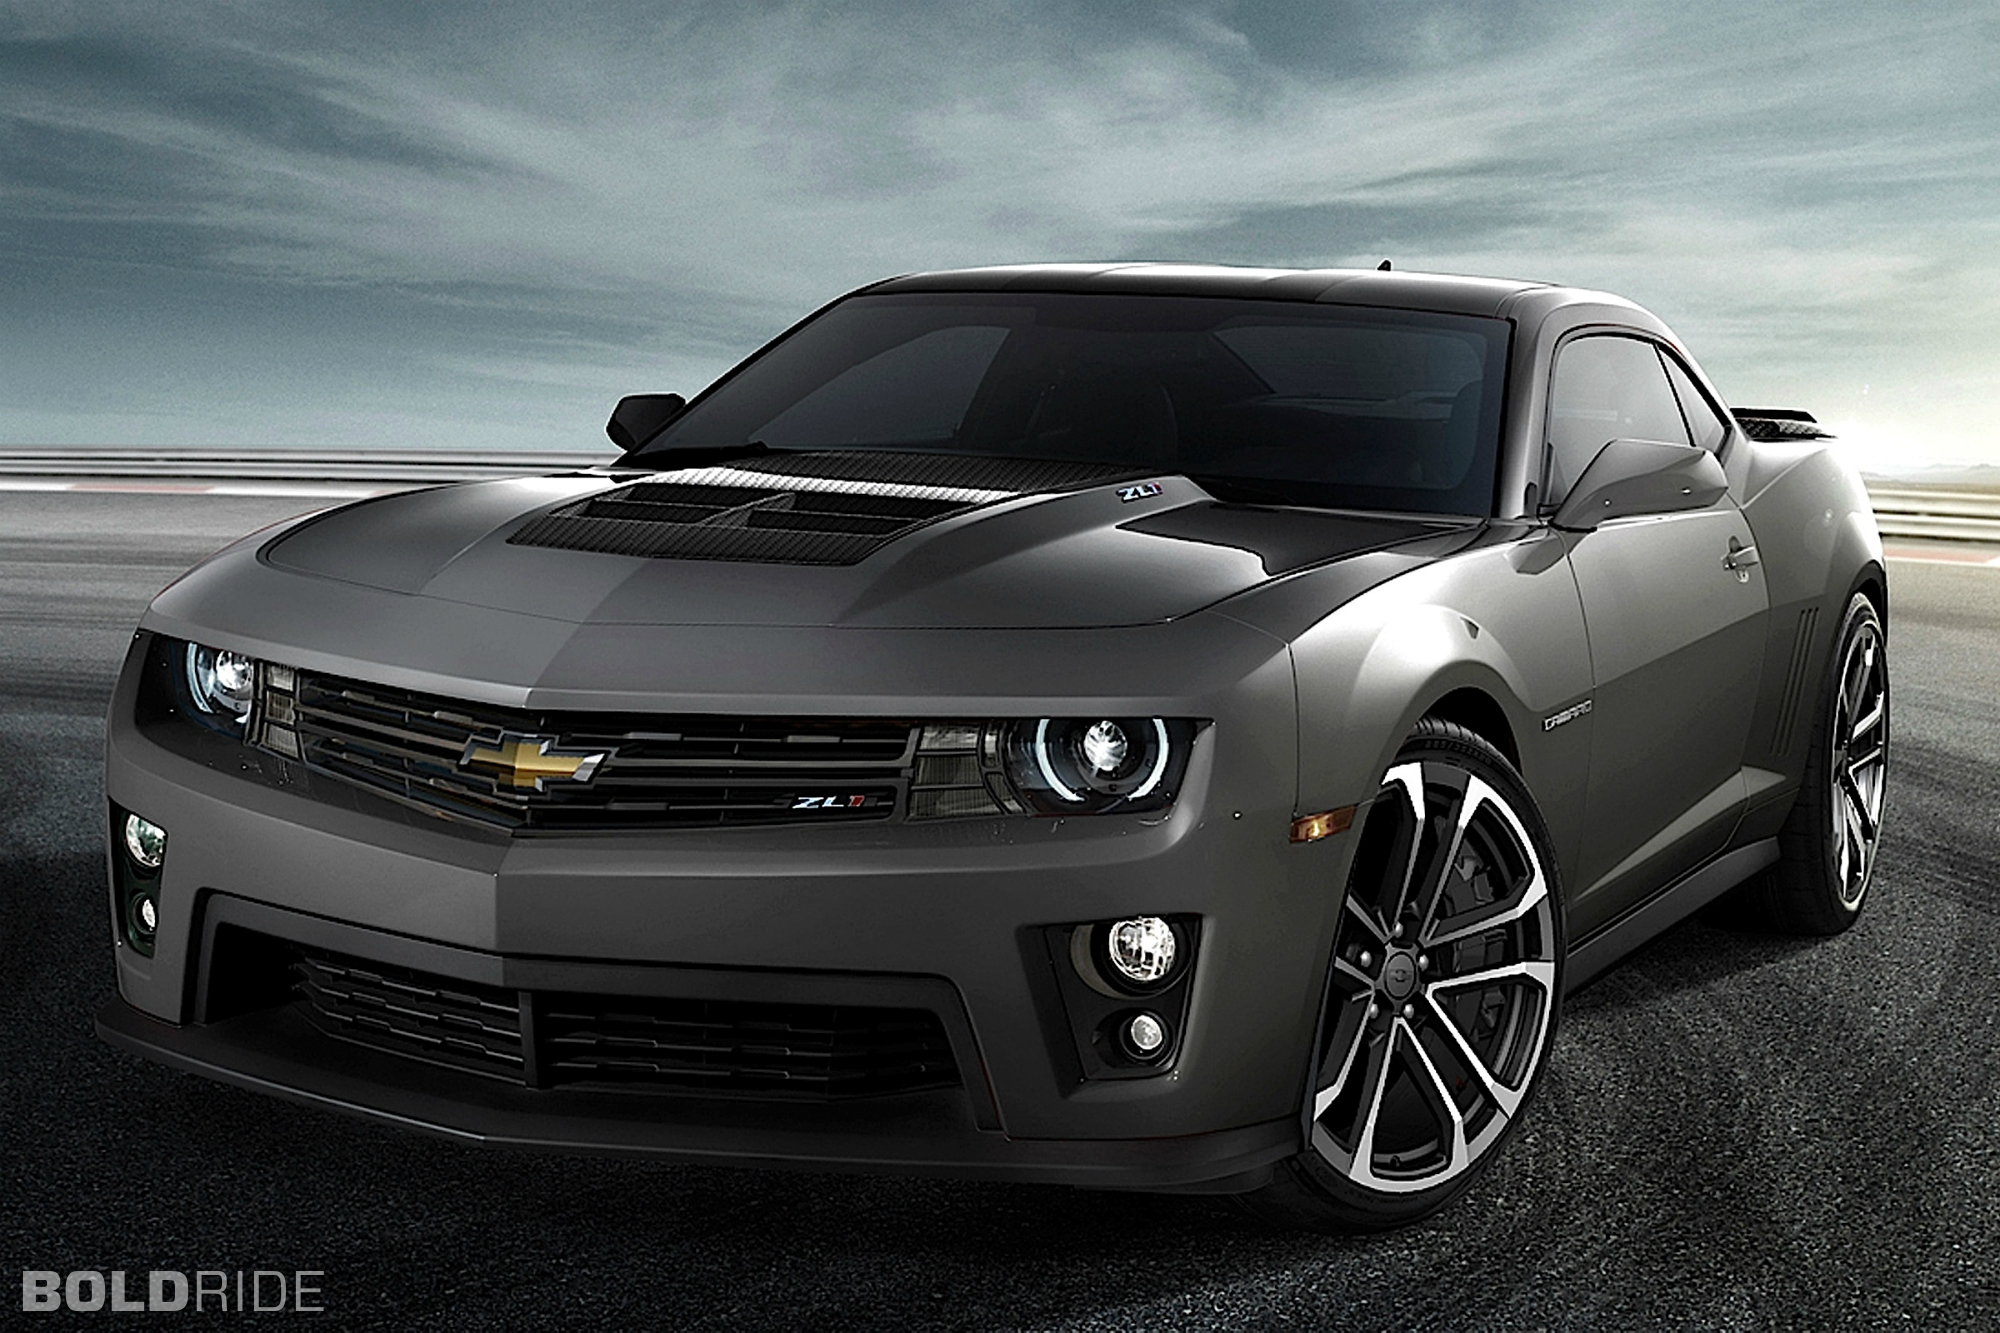 2011 Chevrolet Camaro ZL1 Carbon Concept wallpaper 2000x1333 78516 2000x1333